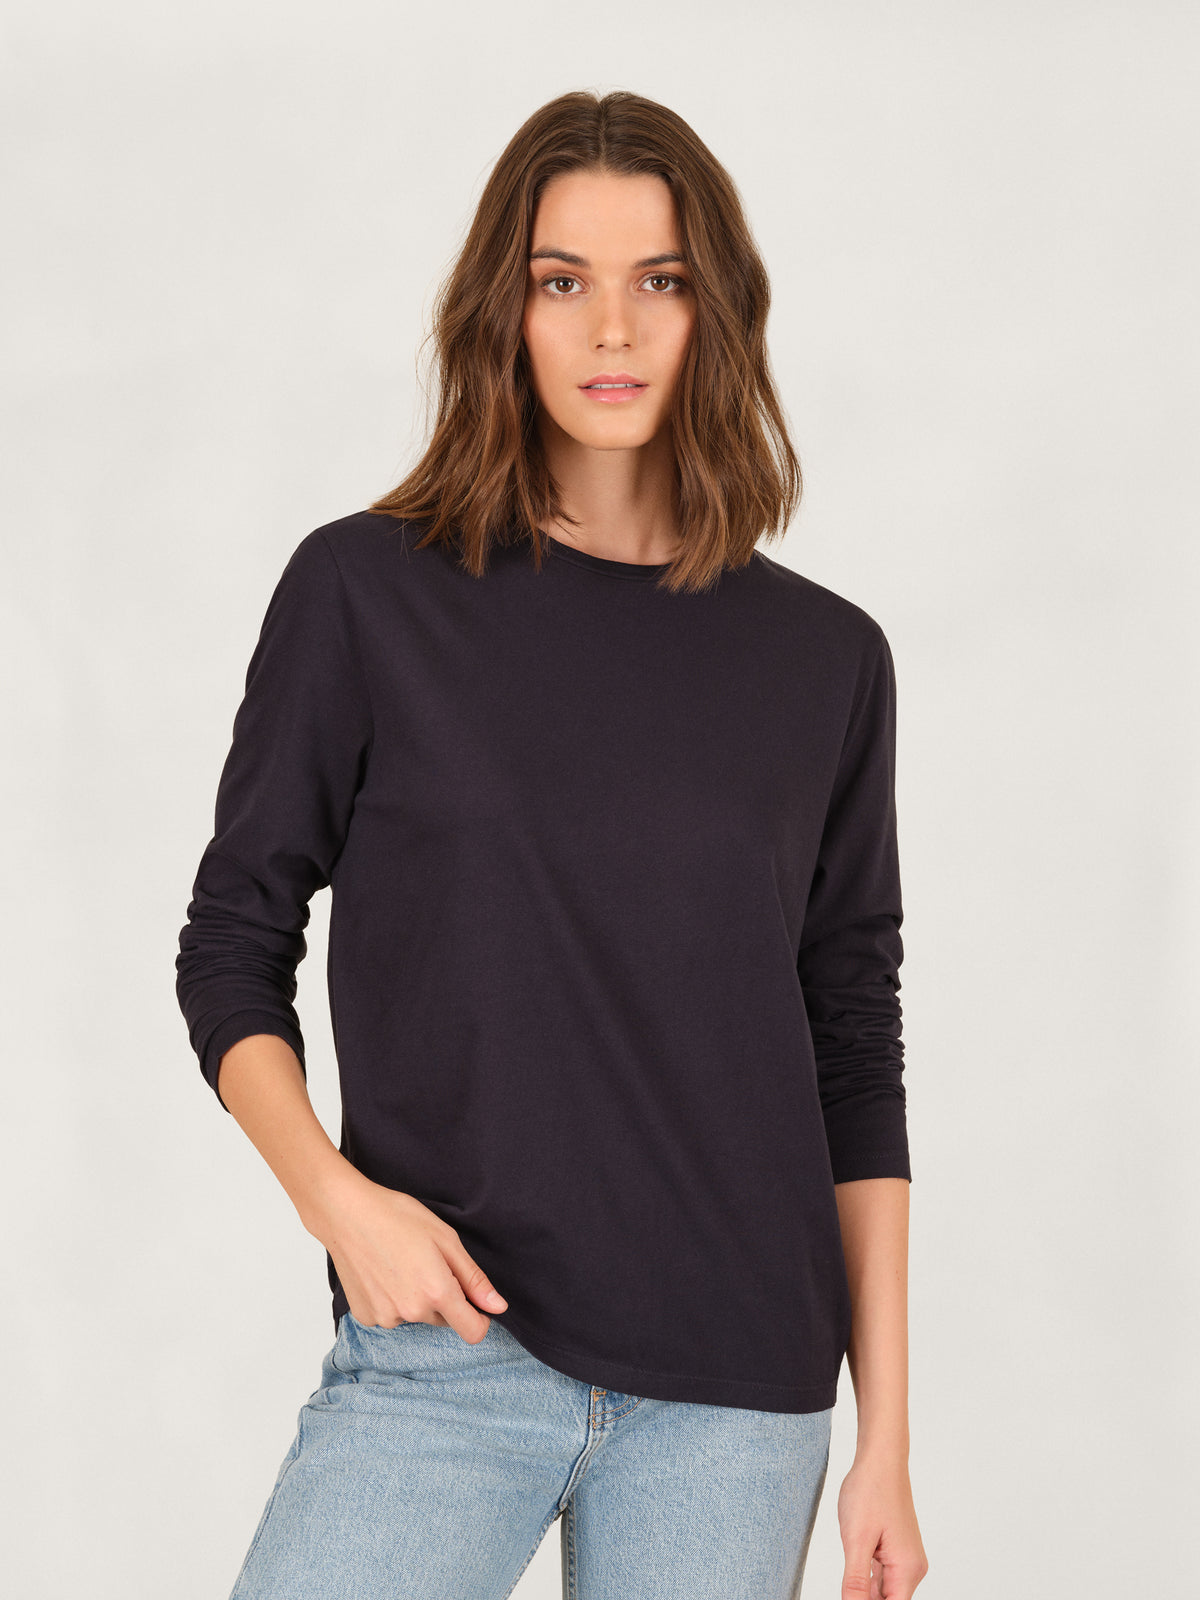 Boyfriend Long Sleeve Crew